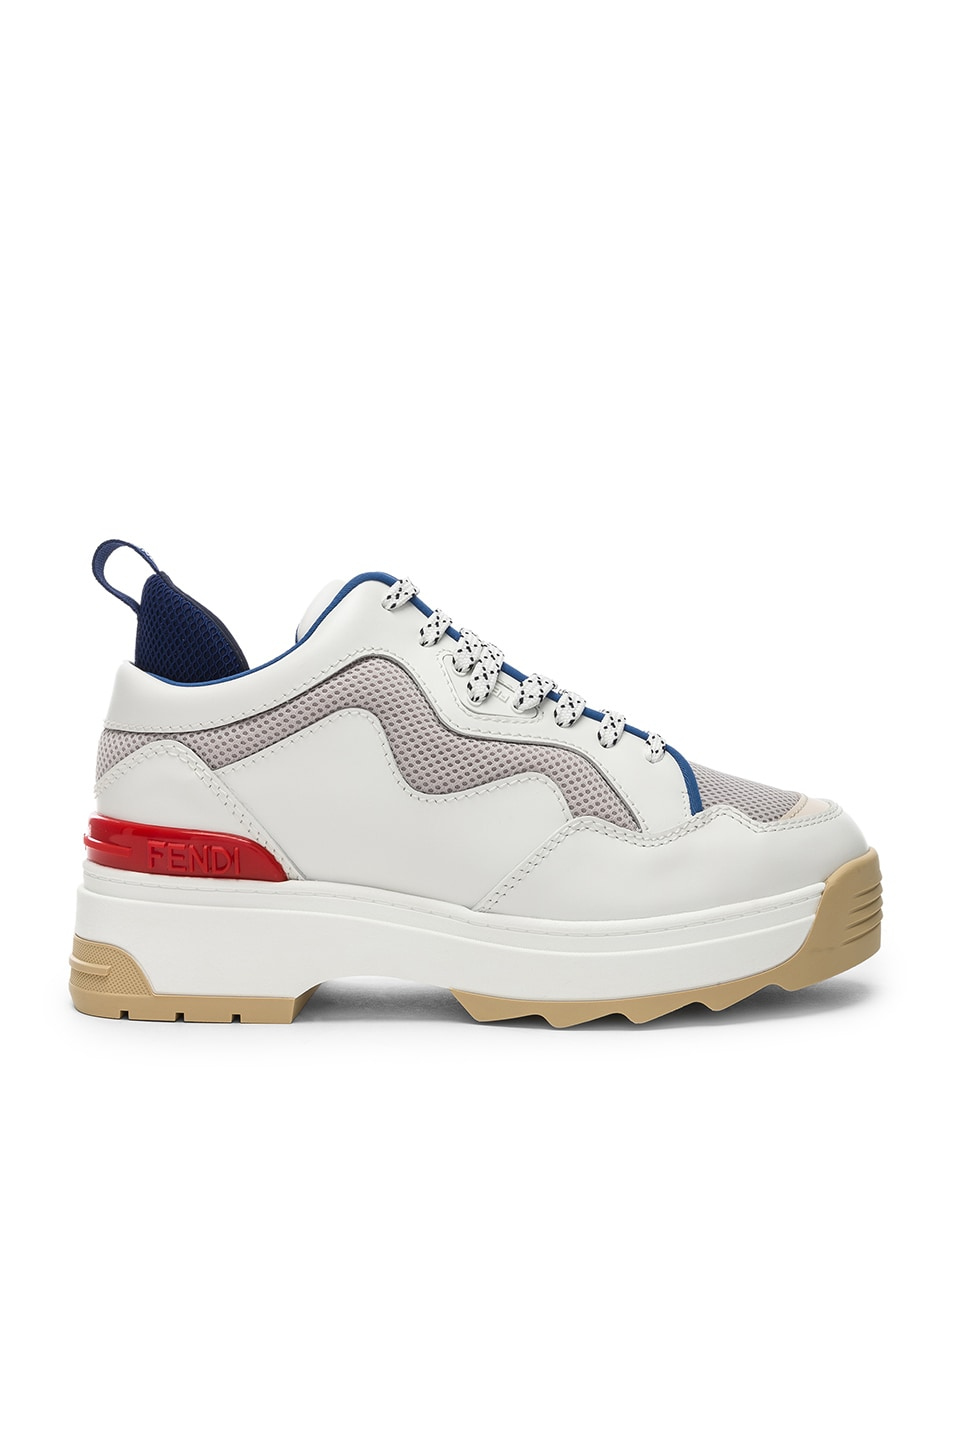 Image 1 of Fendi T-Rex Sneakers in White